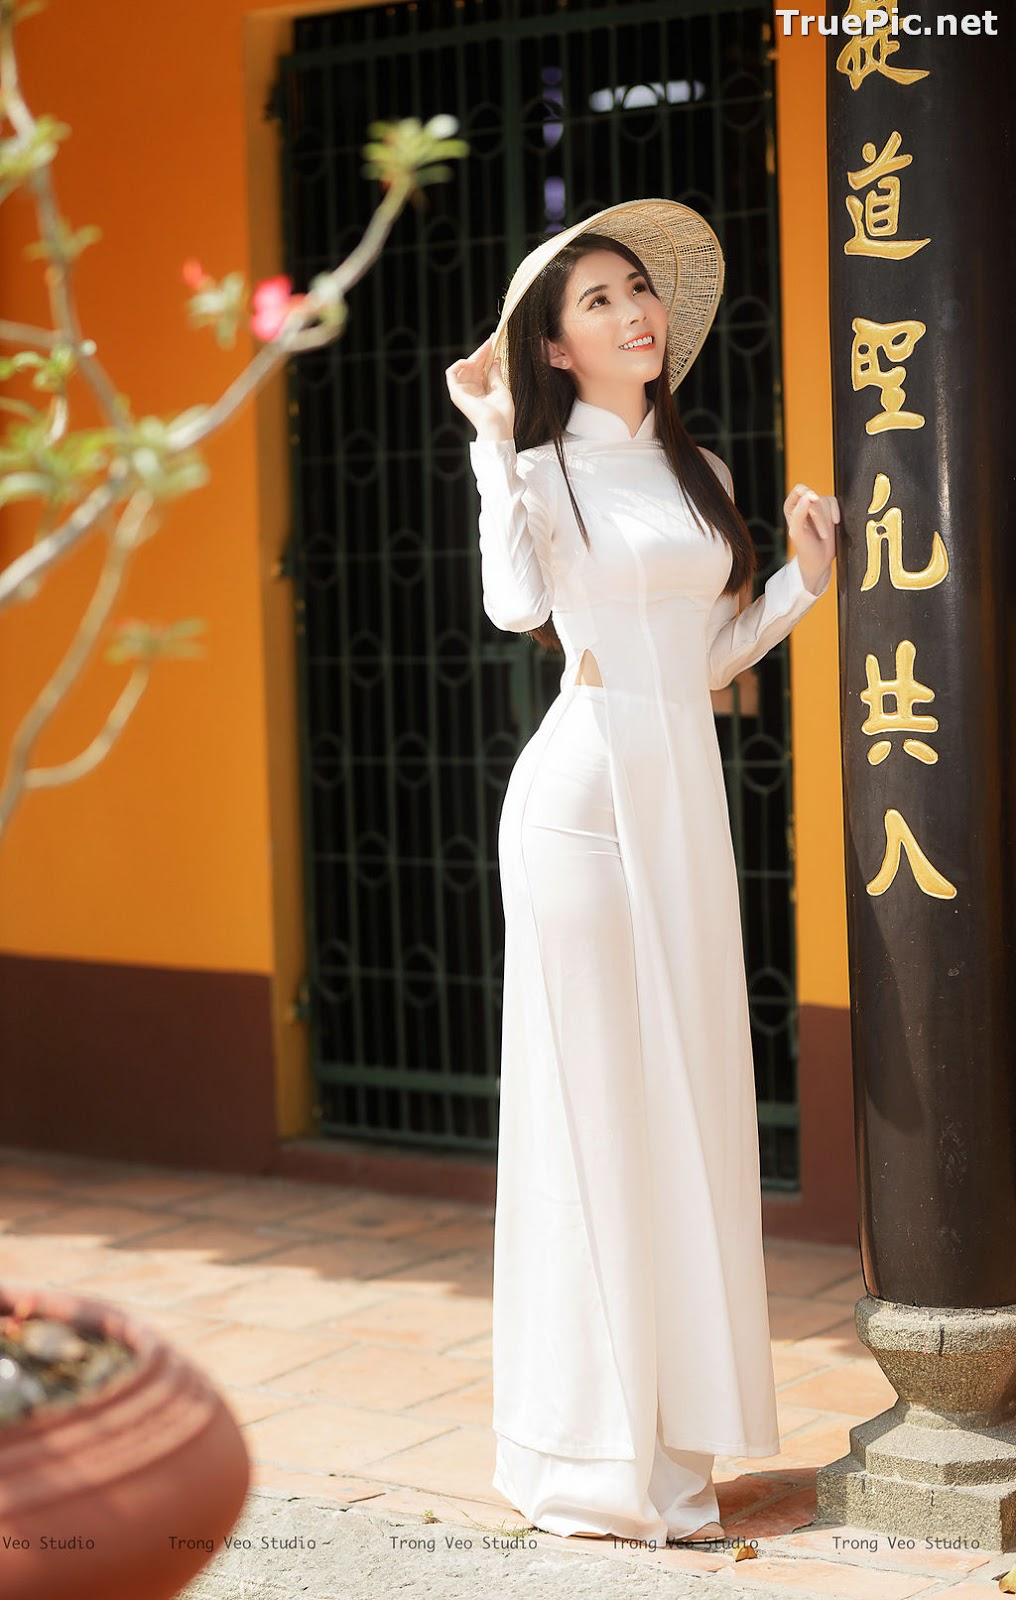 Image The Beauty of Vietnamese Girls with Traditional Dress (Ao Dai) #2 - TruePic.net - Picture-9